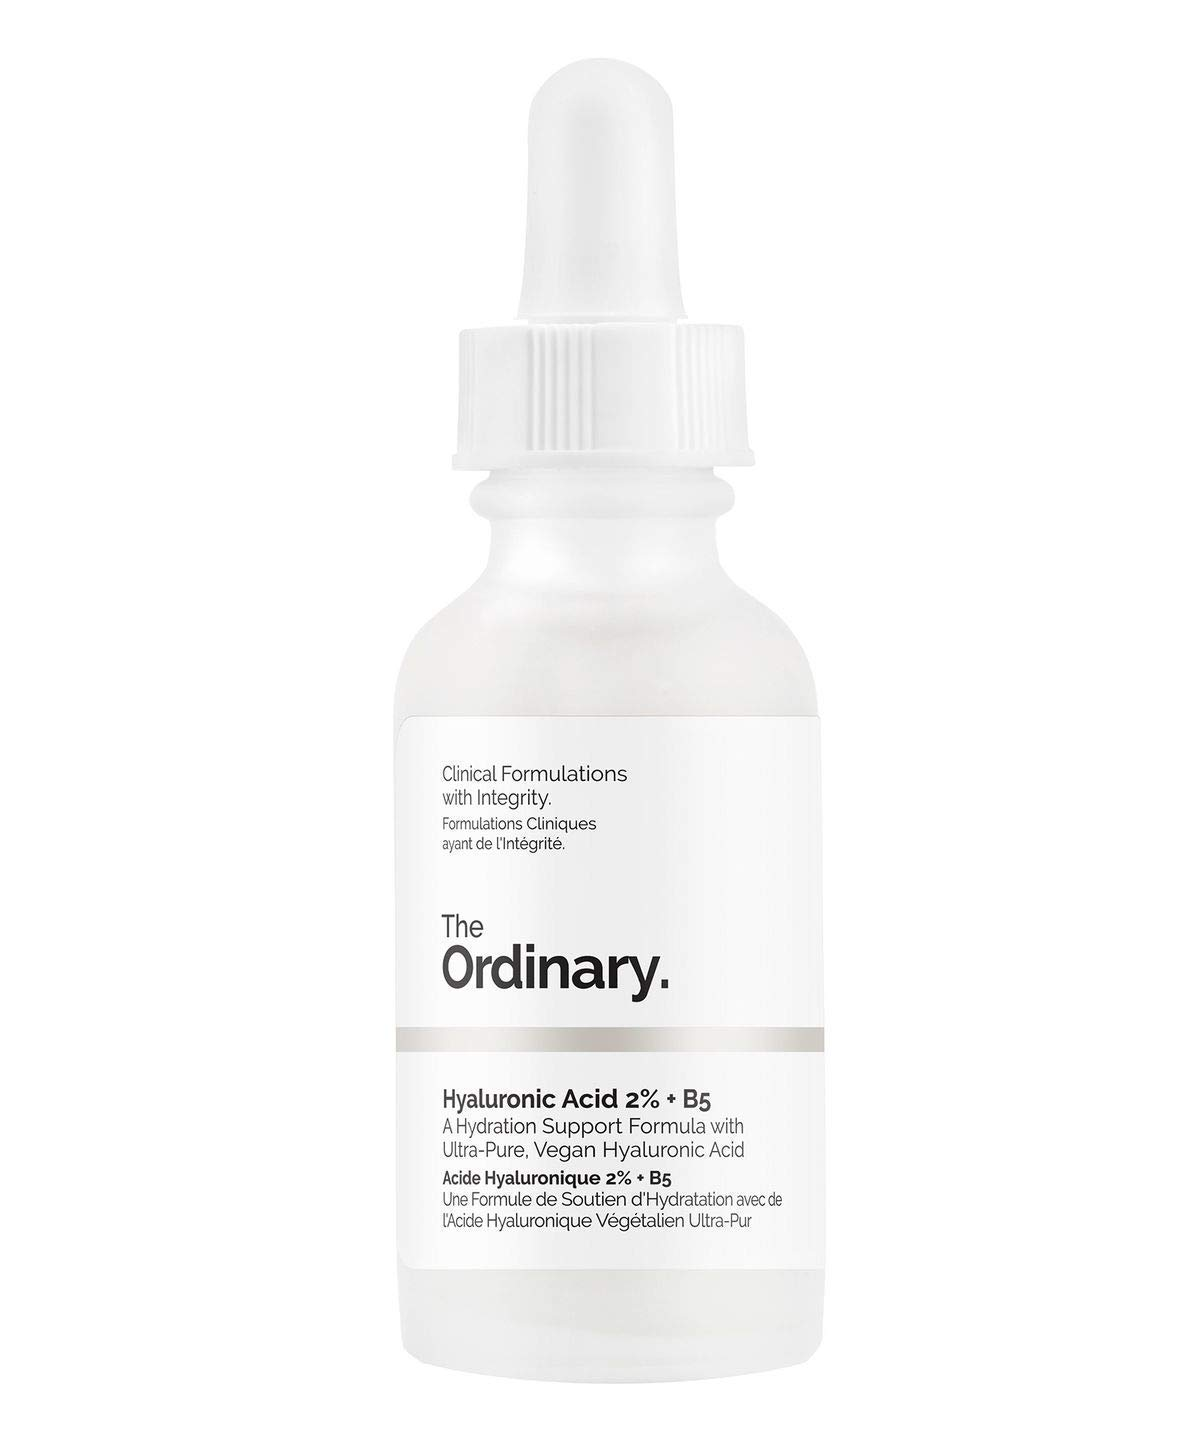 The Ordinary Hyaluronic Acid 2% + B5 30ml by The Ordinary